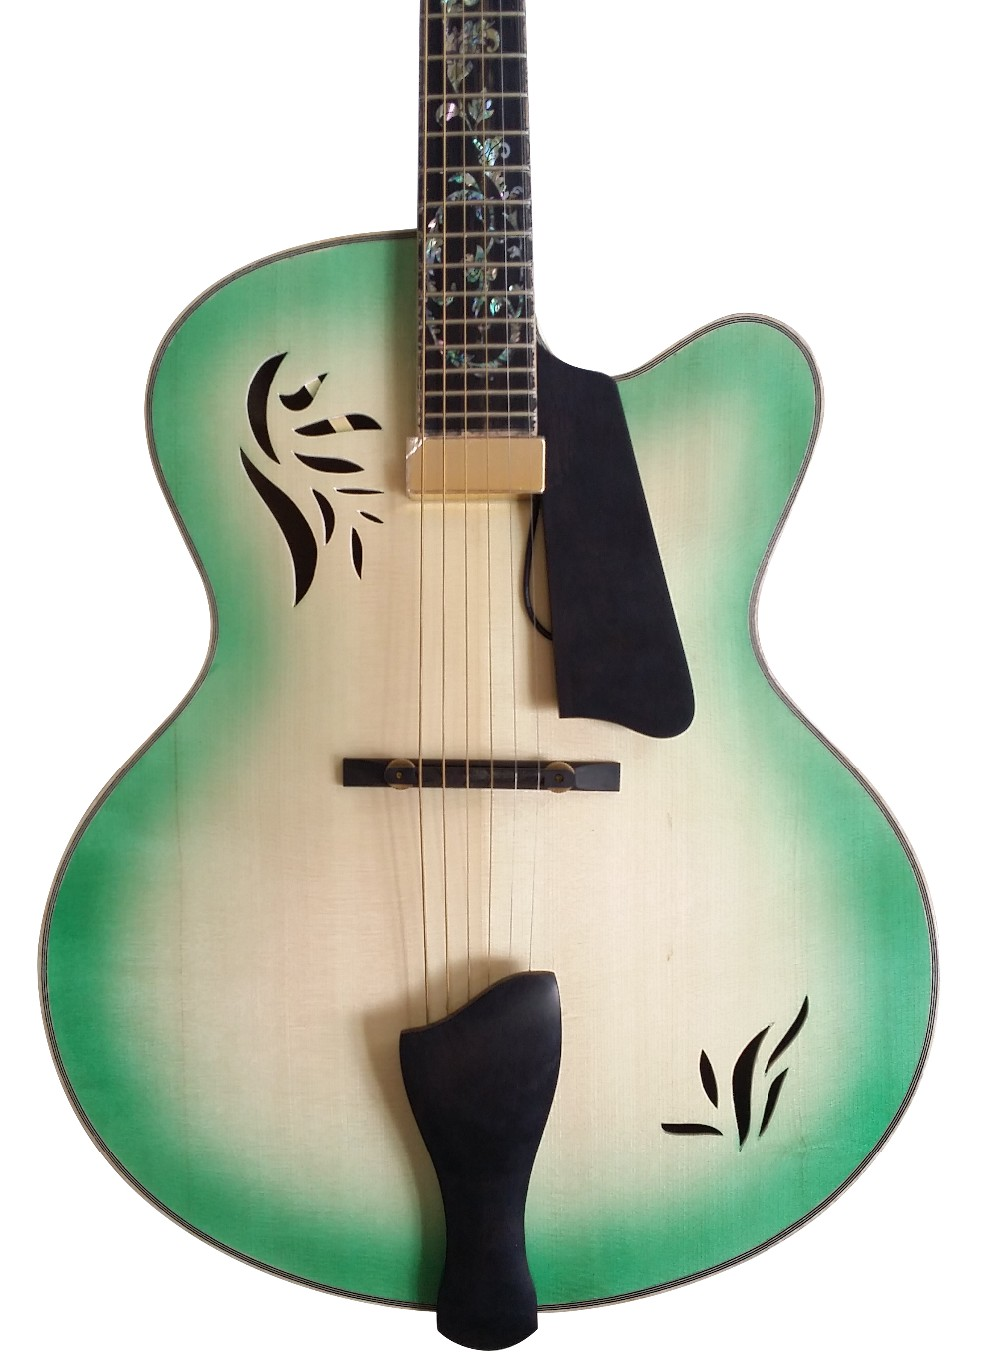 yunzhi fully handmade solid wood archtop guitar